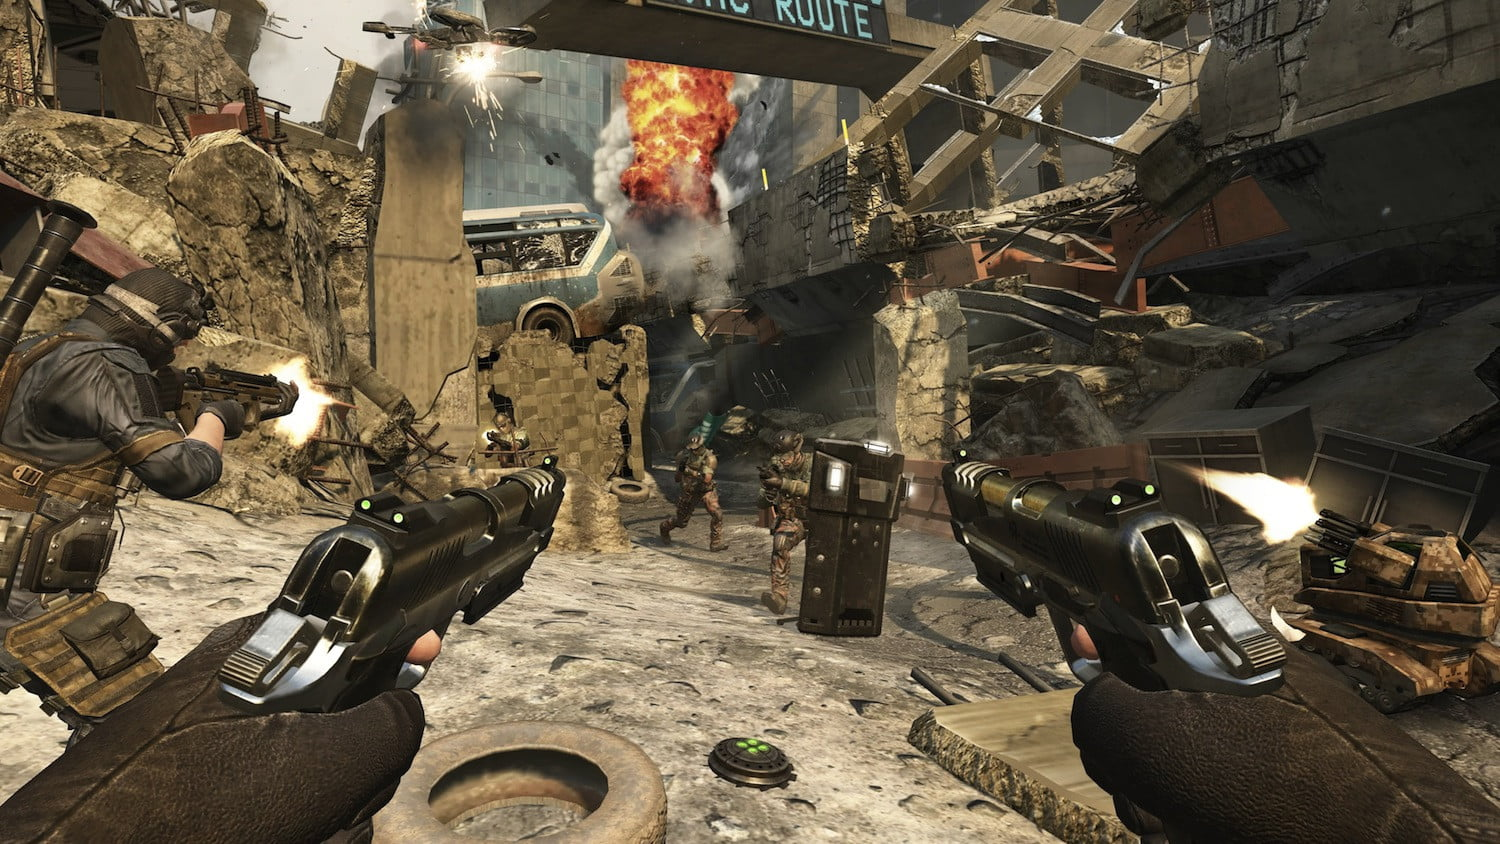 Call Of Duty Black Ops Ii Dlc Exclusive To Xbox 360 Digital Trends